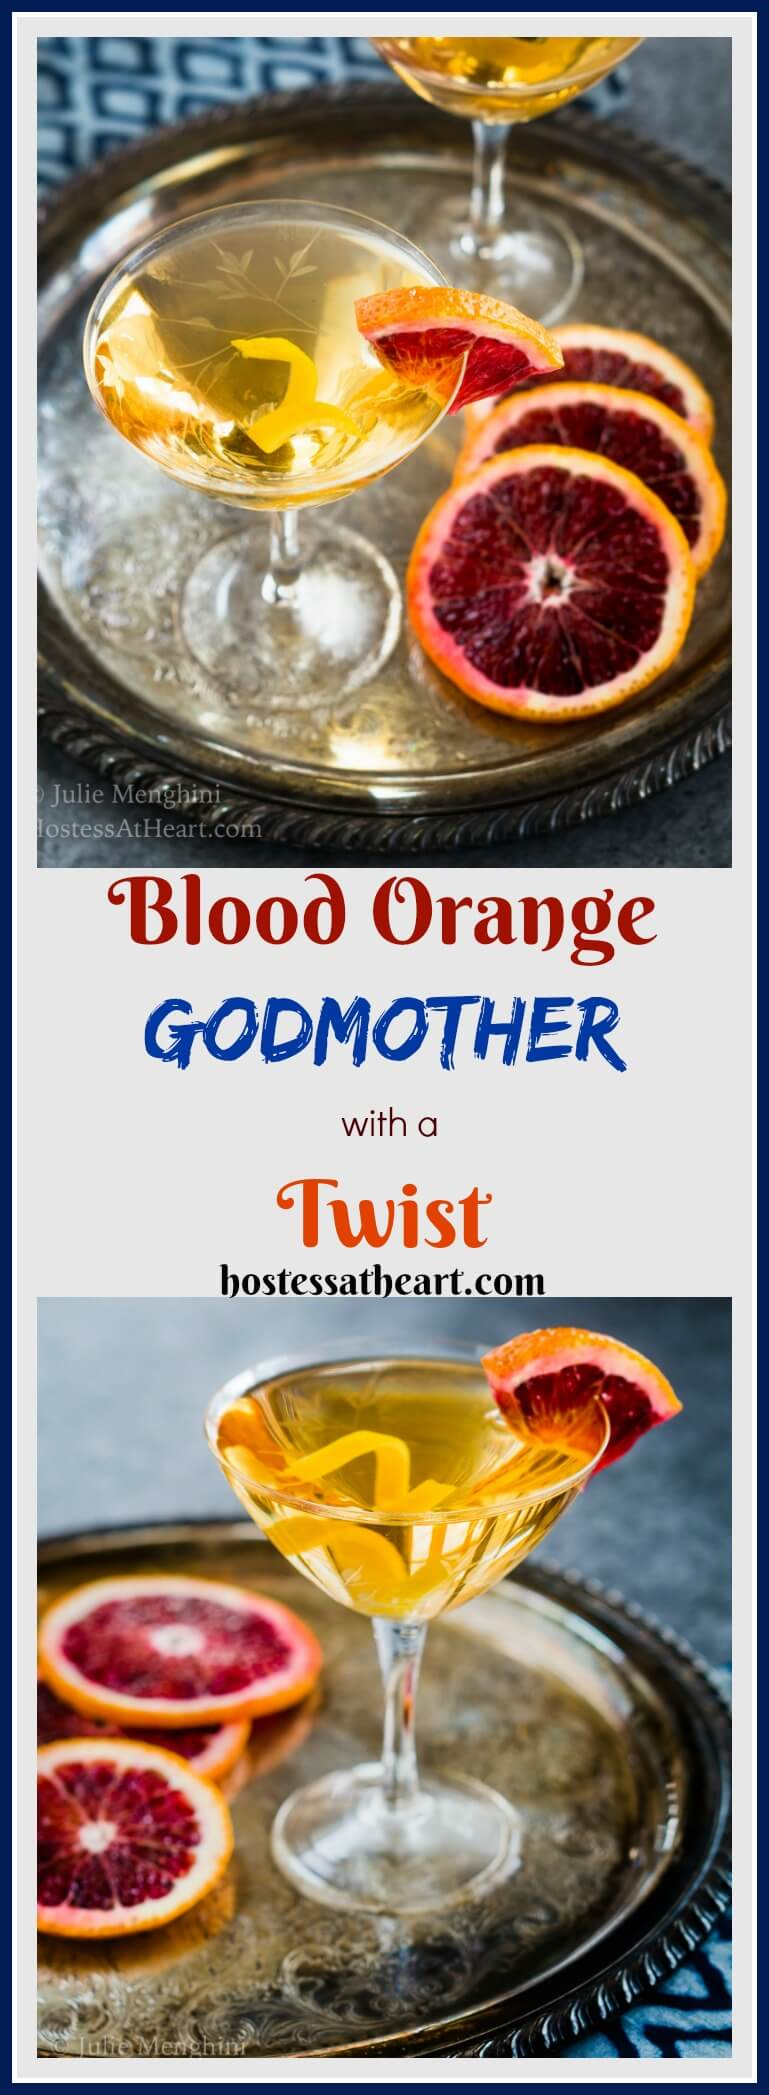 This Blood Orange Godmother cocktail adds a whole new twist to a traditional Godmother. This lady is a modern gal and is all dressed up and ready to please. #MixedDrinks #Cocktails #Vodka #drinks | Cocktails with Vodka | Vodka Mixed Drinks | Cocktail Recipes